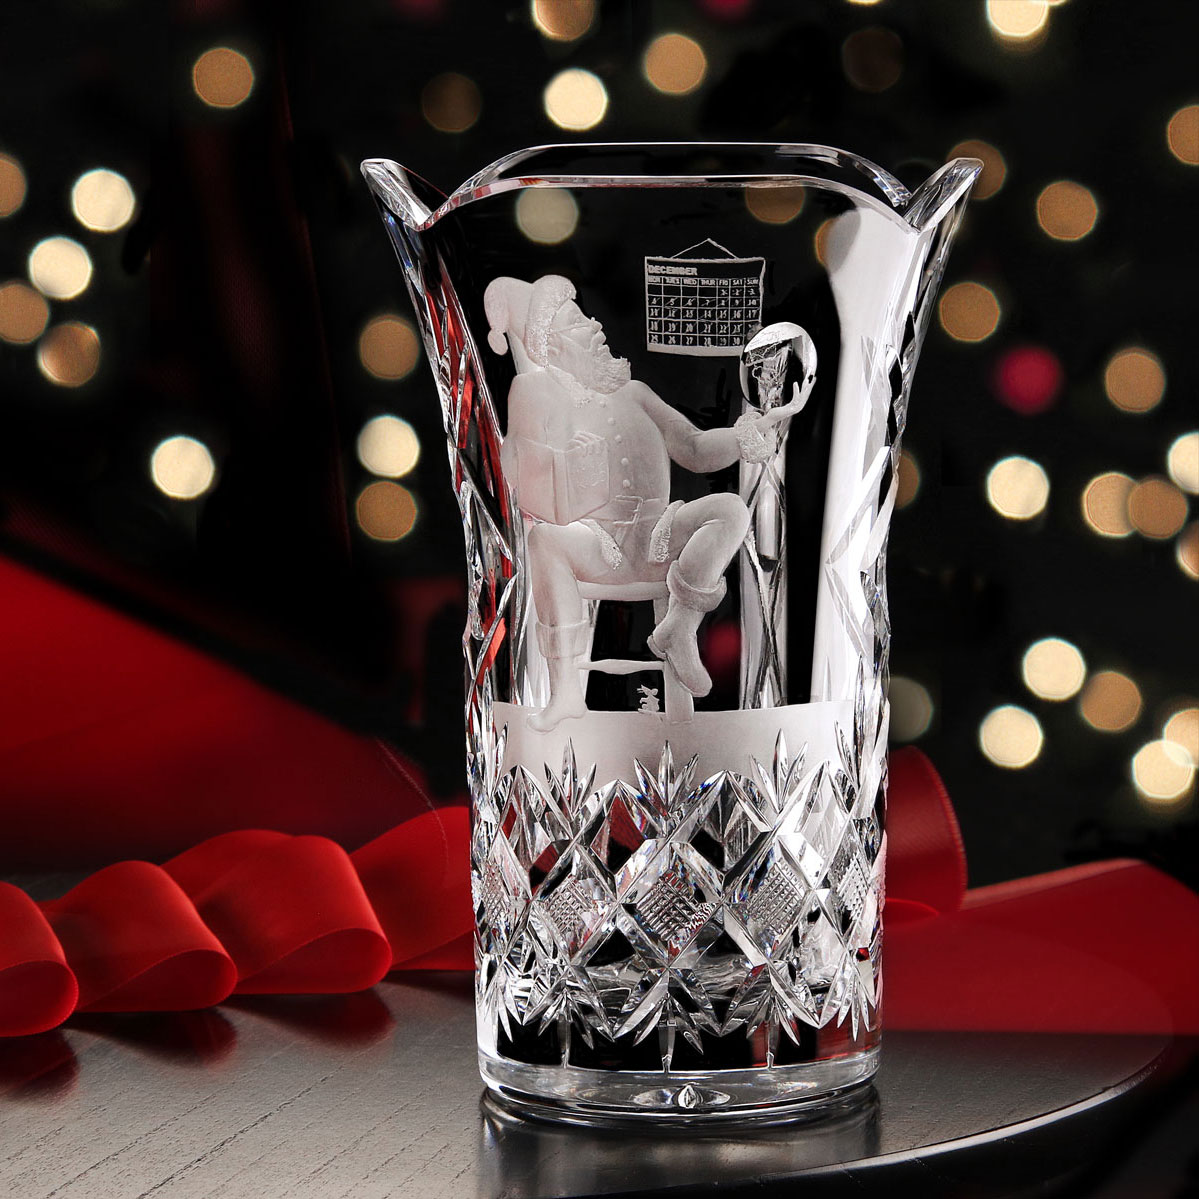 Cashs Ireland, Crystal Art Collection, Santa With Globe Vase, Limited Edition